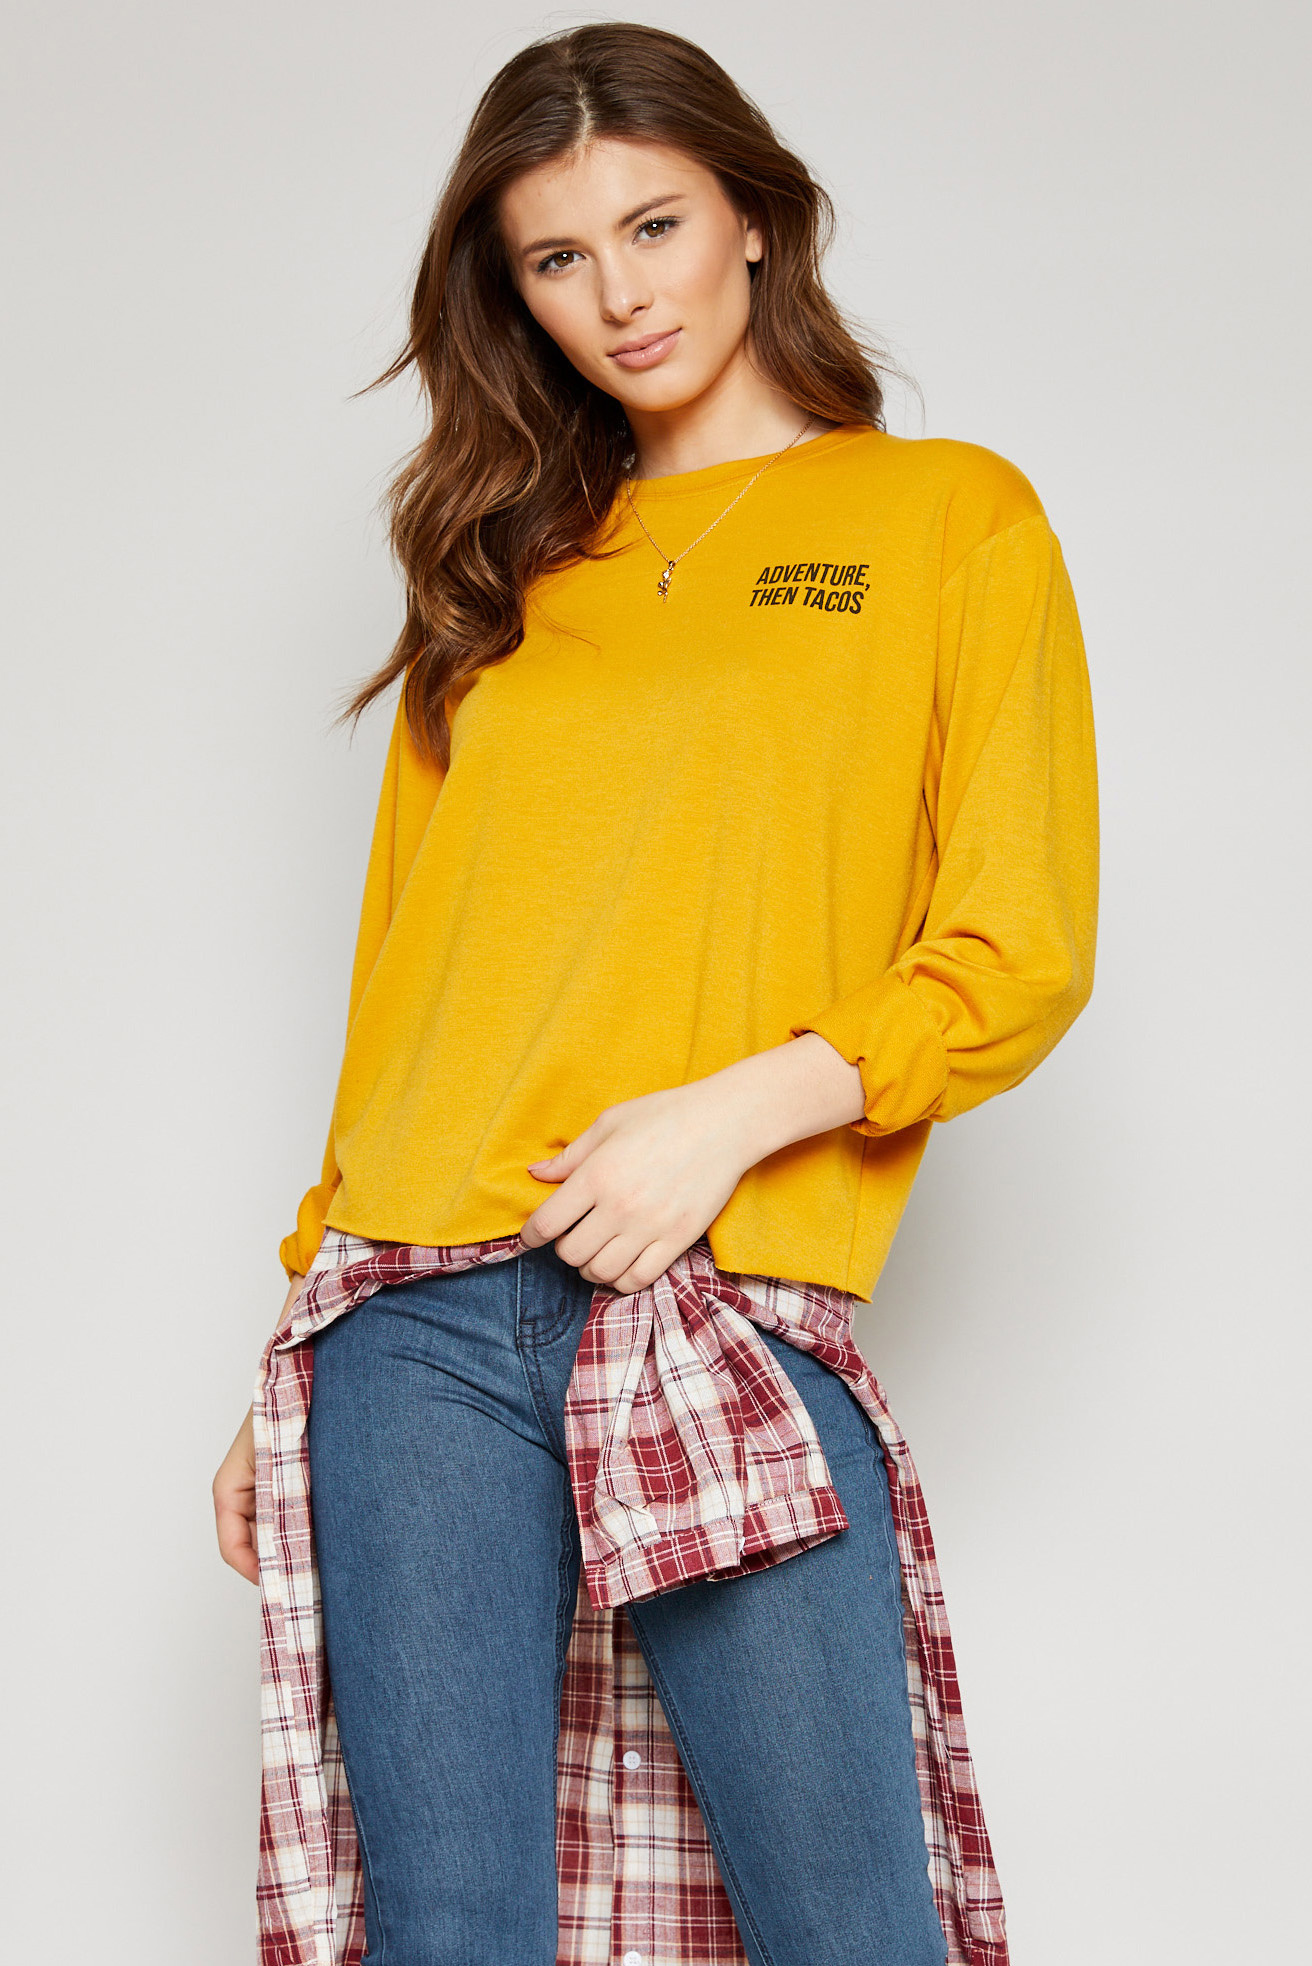 Sadie & Sage Then Tacos L/S Top